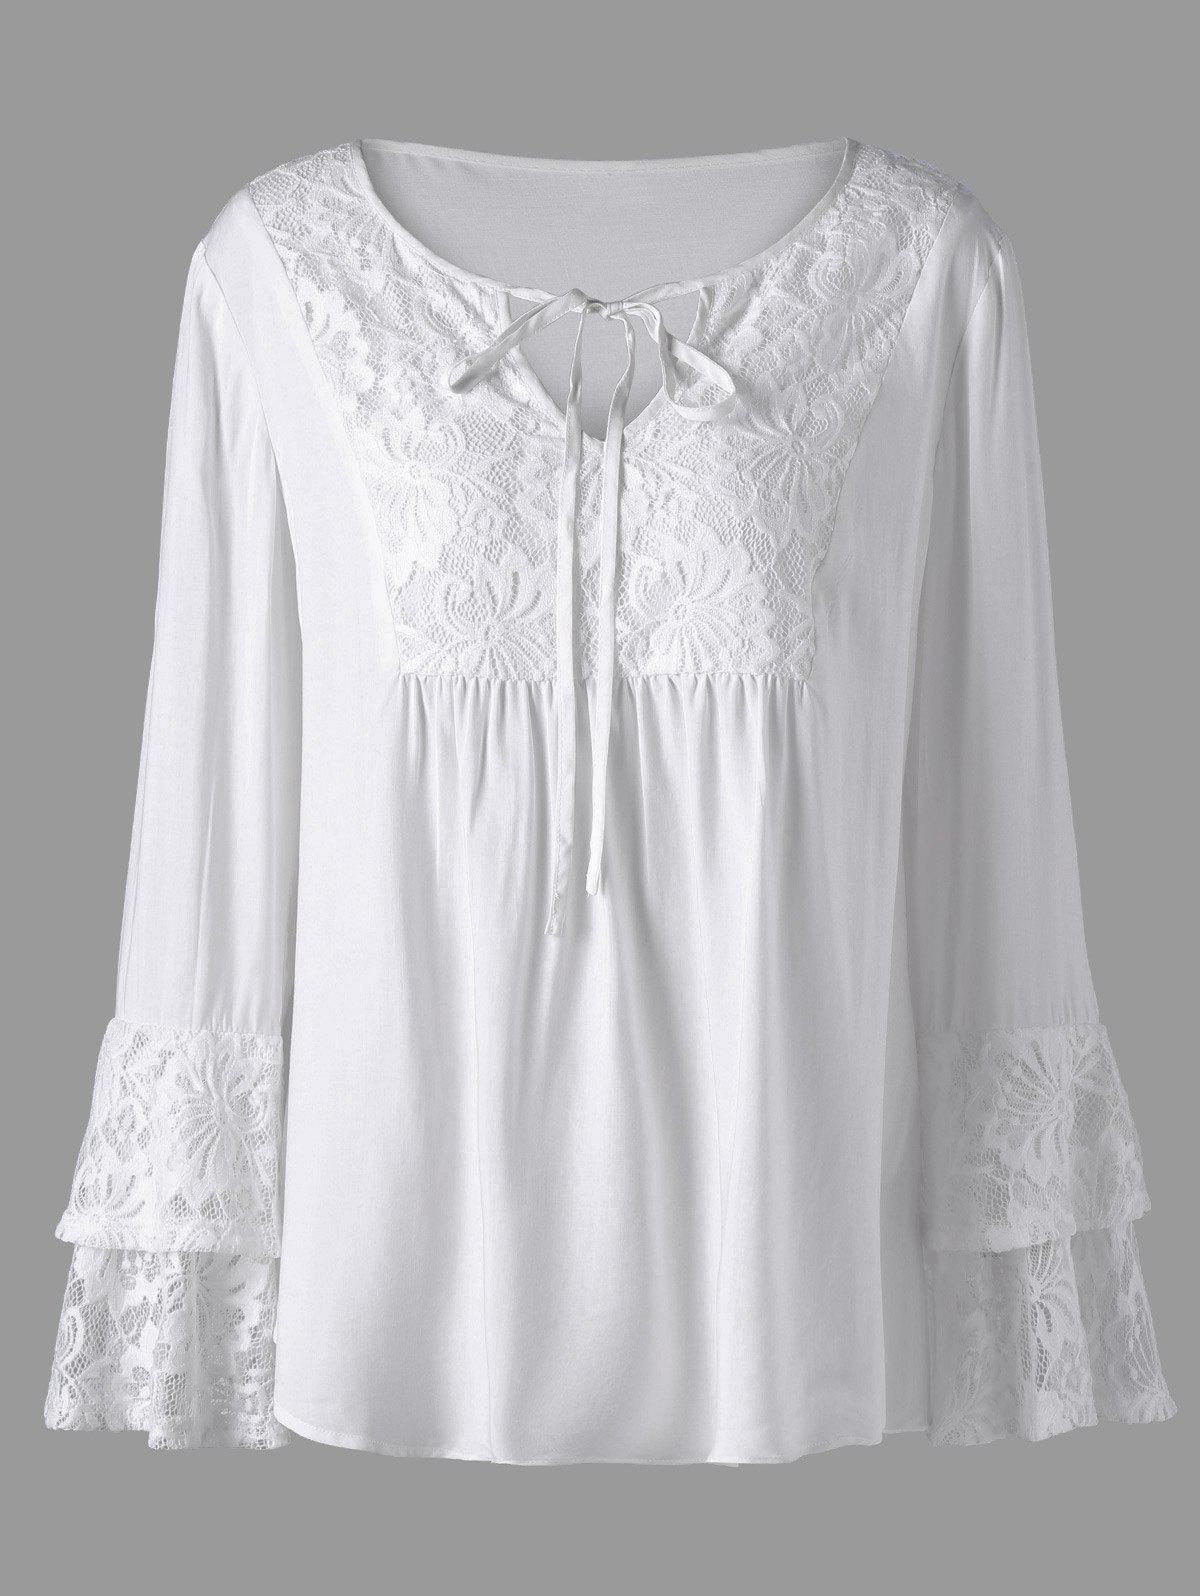 Plus Size Layered Sleeve Lace Trim BlouseWOMEN<br><br>Size: 5XL; Color: WHITE; Material: Rayon,Spandex; Shirt Length: Long; Sleeve Length: Full; Collar: Keyhole Neck; Style: Casual; Season: Fall,Spring,Summer; Embellishment: Lace; Pattern Type: Floral; Weight: 0.2200kg; Package Contents: 1 x Blouse;